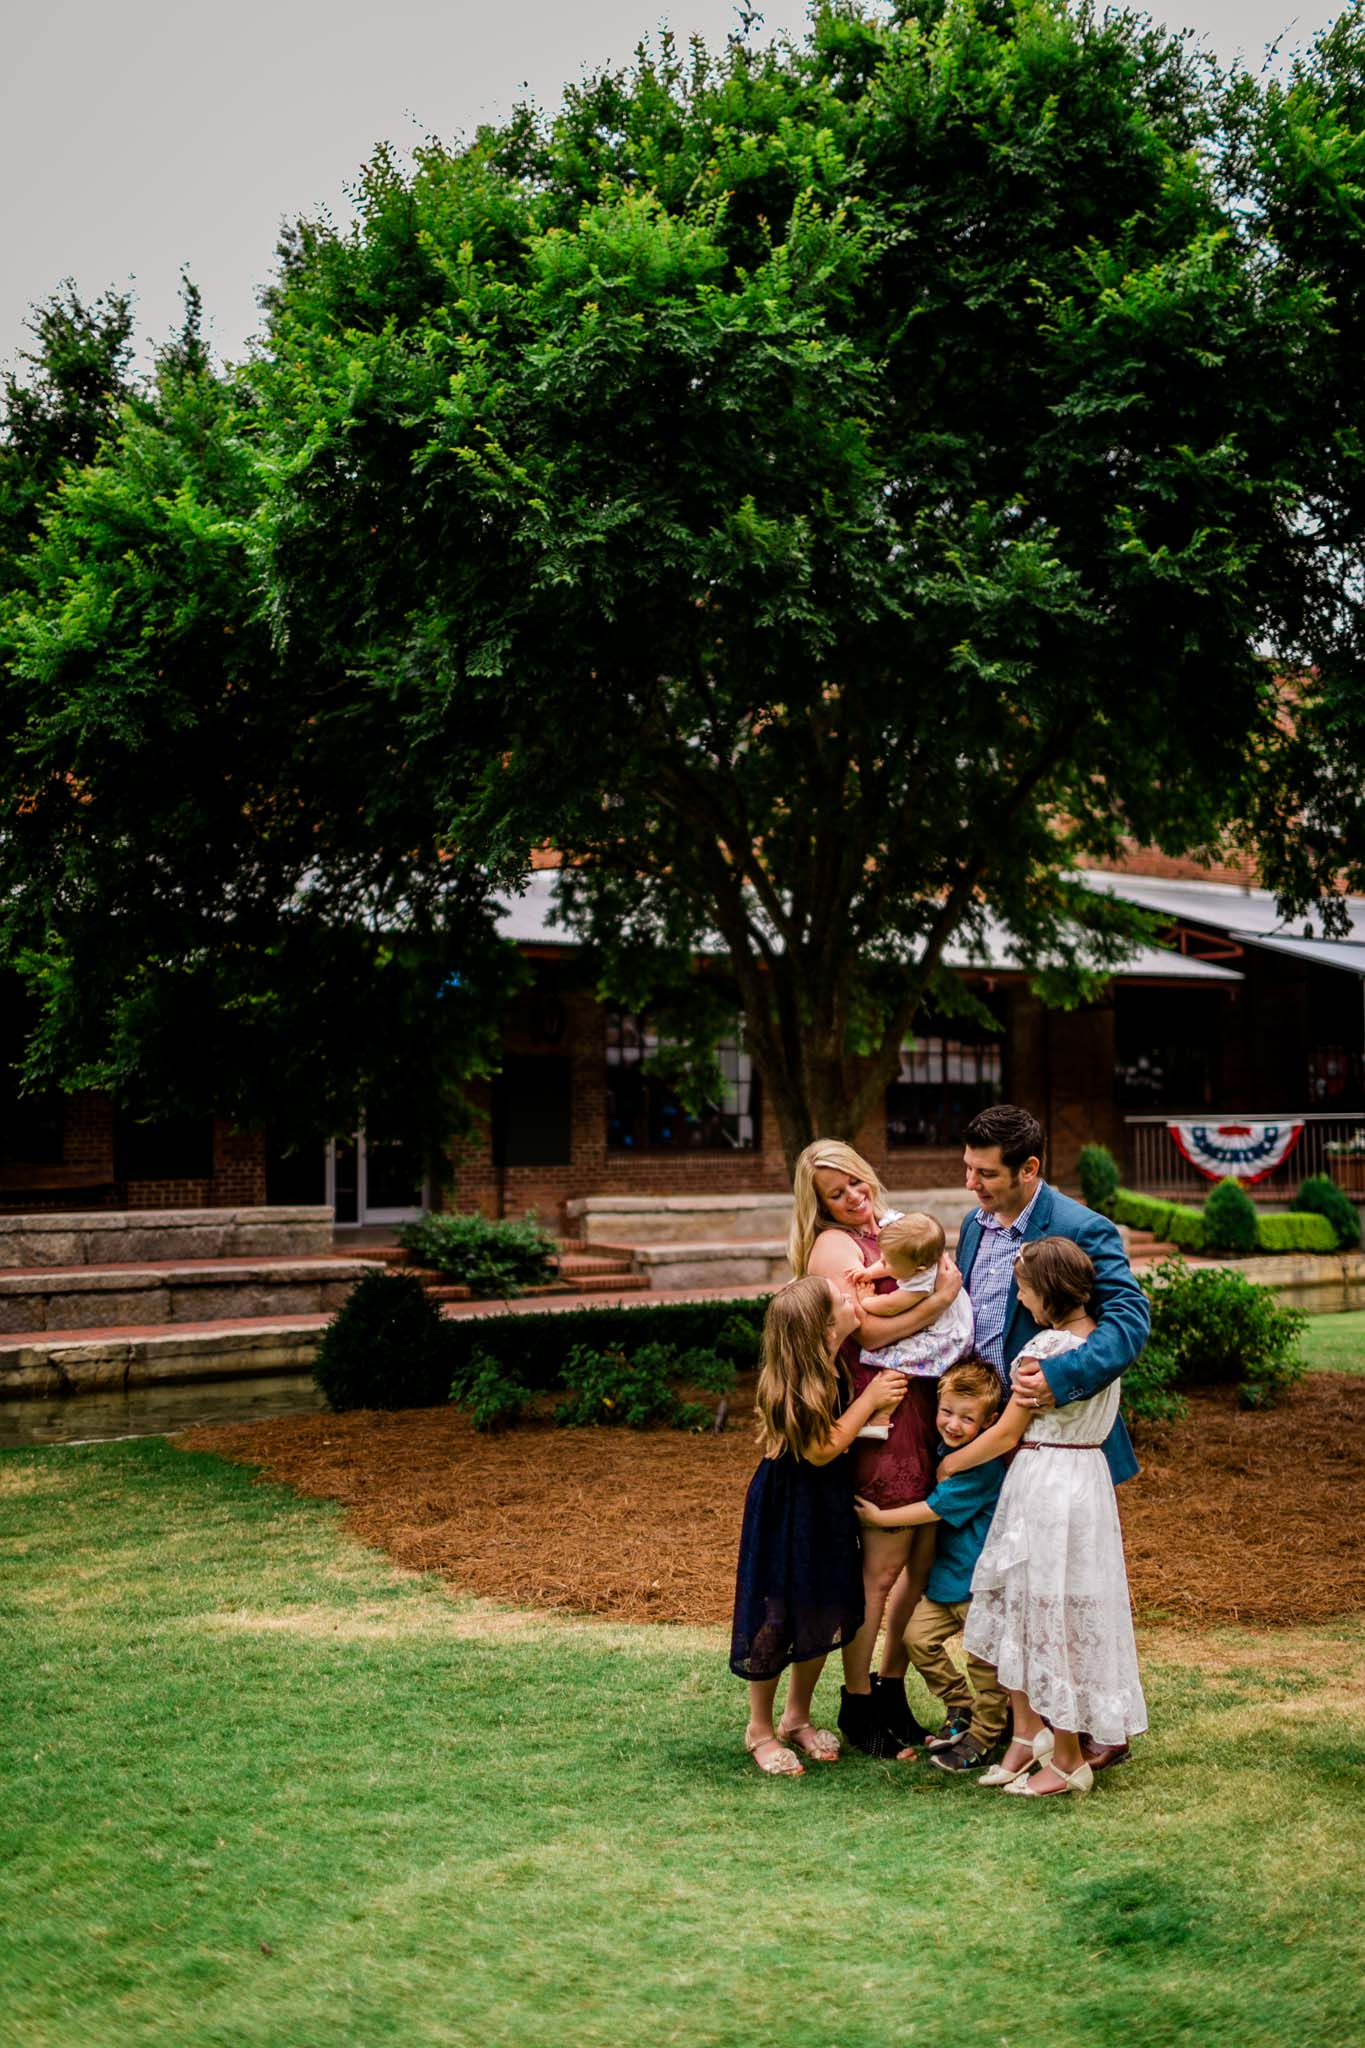 Durham Family Photographer | By G. Lin Photography | Candid portrait of family hugging together